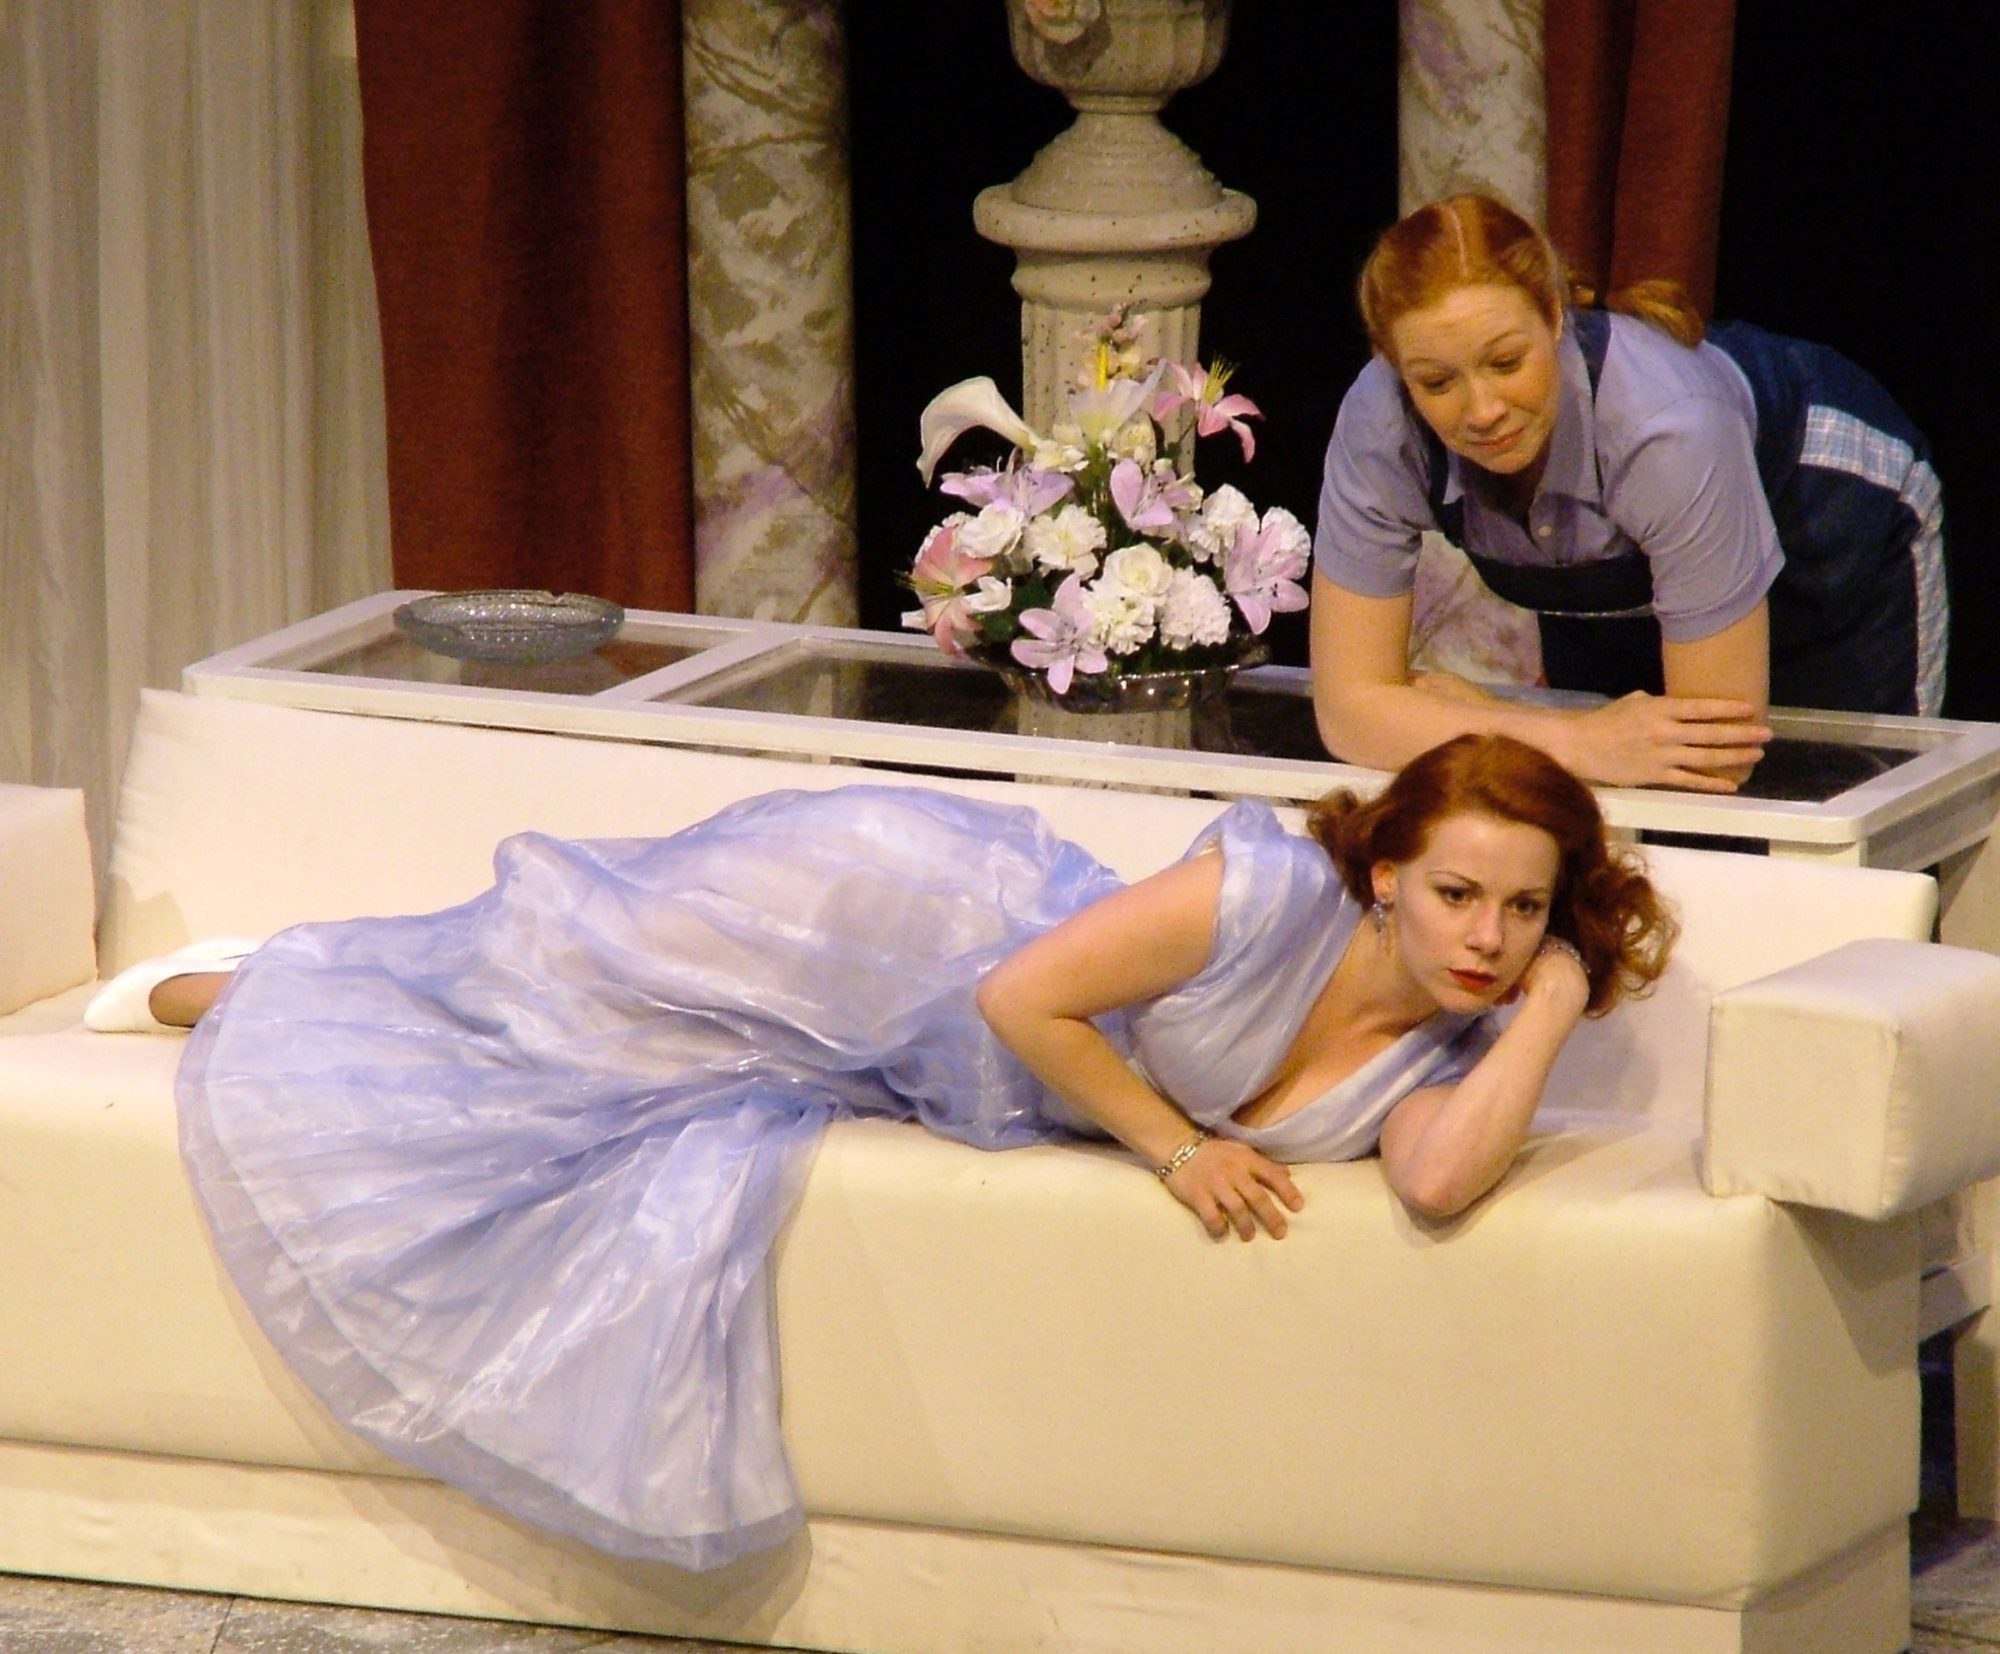 The Philadelphia Story. Angela Ingersoll, Elspeth Runyon. Playhouse on the Square.